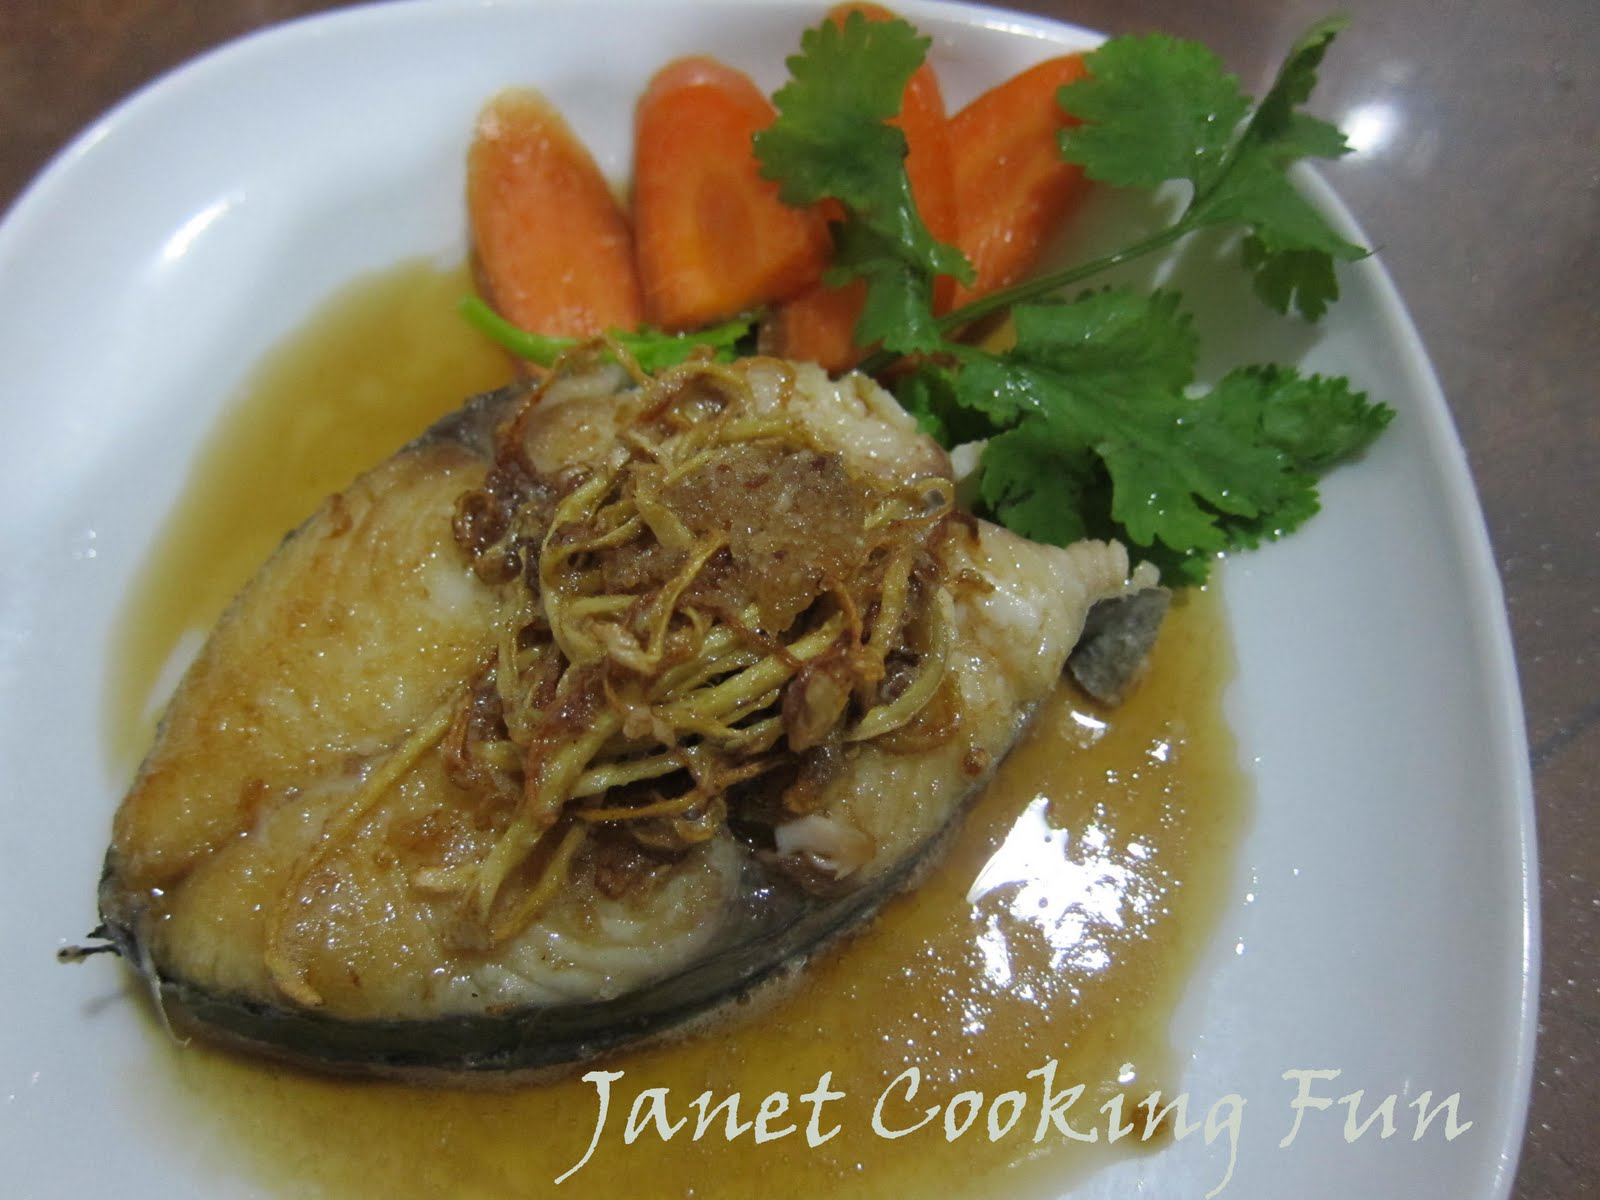 Janet wooi 39 s blog fish recipe ginger fish in sesame oil for Ginger fish recipe